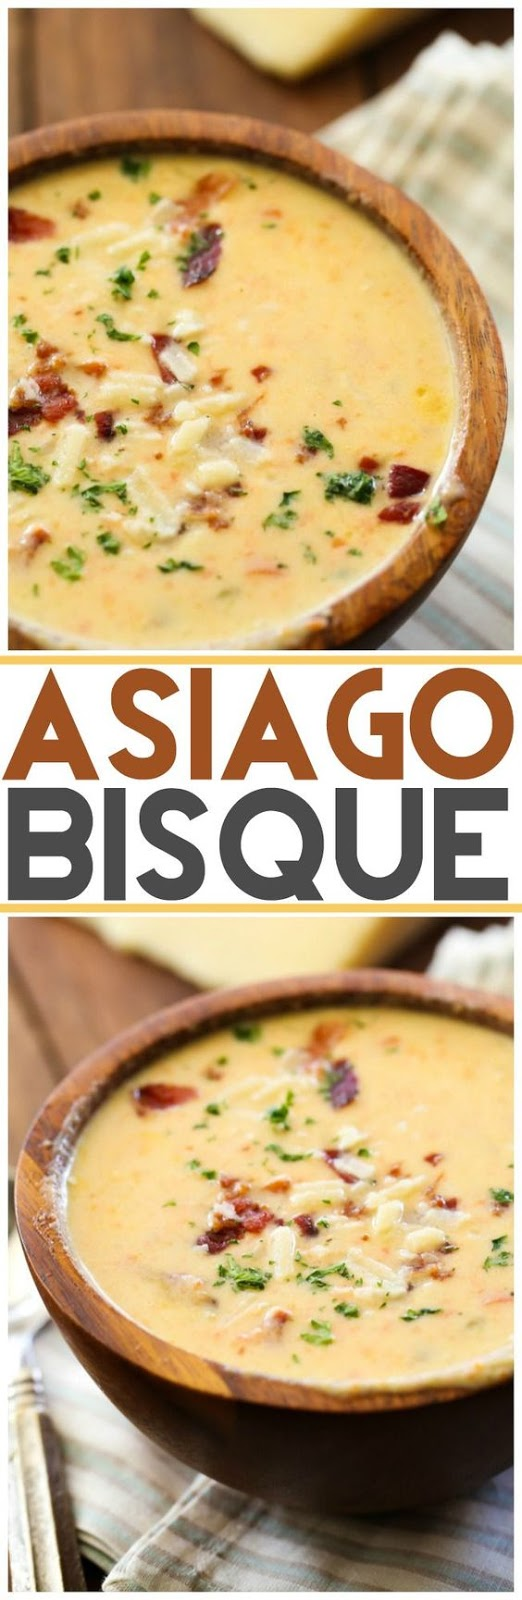 ★★★★☆ 3261 ratings | Asiago Bisque  #HEALTHYFOOD #EASYRECIPES #DINNER #LAUCH #DELICIOUS #EASY #HOLIDAYS #RECIPE #DESSERTS #SPECIALDIET #WORLDCUISINE #CAKE #APPETIZERS #HEALTHYRECIPES #DRINKS #COOKINGMETHOD #ITALIANRECIPES #MEAT #VEGANRECIPES #COOKIES #PASTA #FRUIT #SALAD #SOUPAPPETIZERS #NONALCOHOLICDRINKS #MEALPLANNING #VEGETABLES #SOUP #PASTRY #CHOCOLATE #DAIRY #ALCOHOLICDRINKS #BULGURSALAD #BAKING #SNACKS #BEEFRECIPES #MEATAPPETIZERS #MEXICANRECIPES #BREAD #ASIANRECIPES #SEAFOODAPPETIZERS #MUFFINS #BREAKFASTANDBRUNCH #CONDIMENTS #CUPCAKES #CHEESE #CHICKENRECIPES #PIE #COFFEE #NOBAKEDESSERTS #HEALTHYSNACKS #SEAFOOD #GRAIN #LUNCHESDINNERS #MEXICAN #QUICKBREAD #LIQUOR